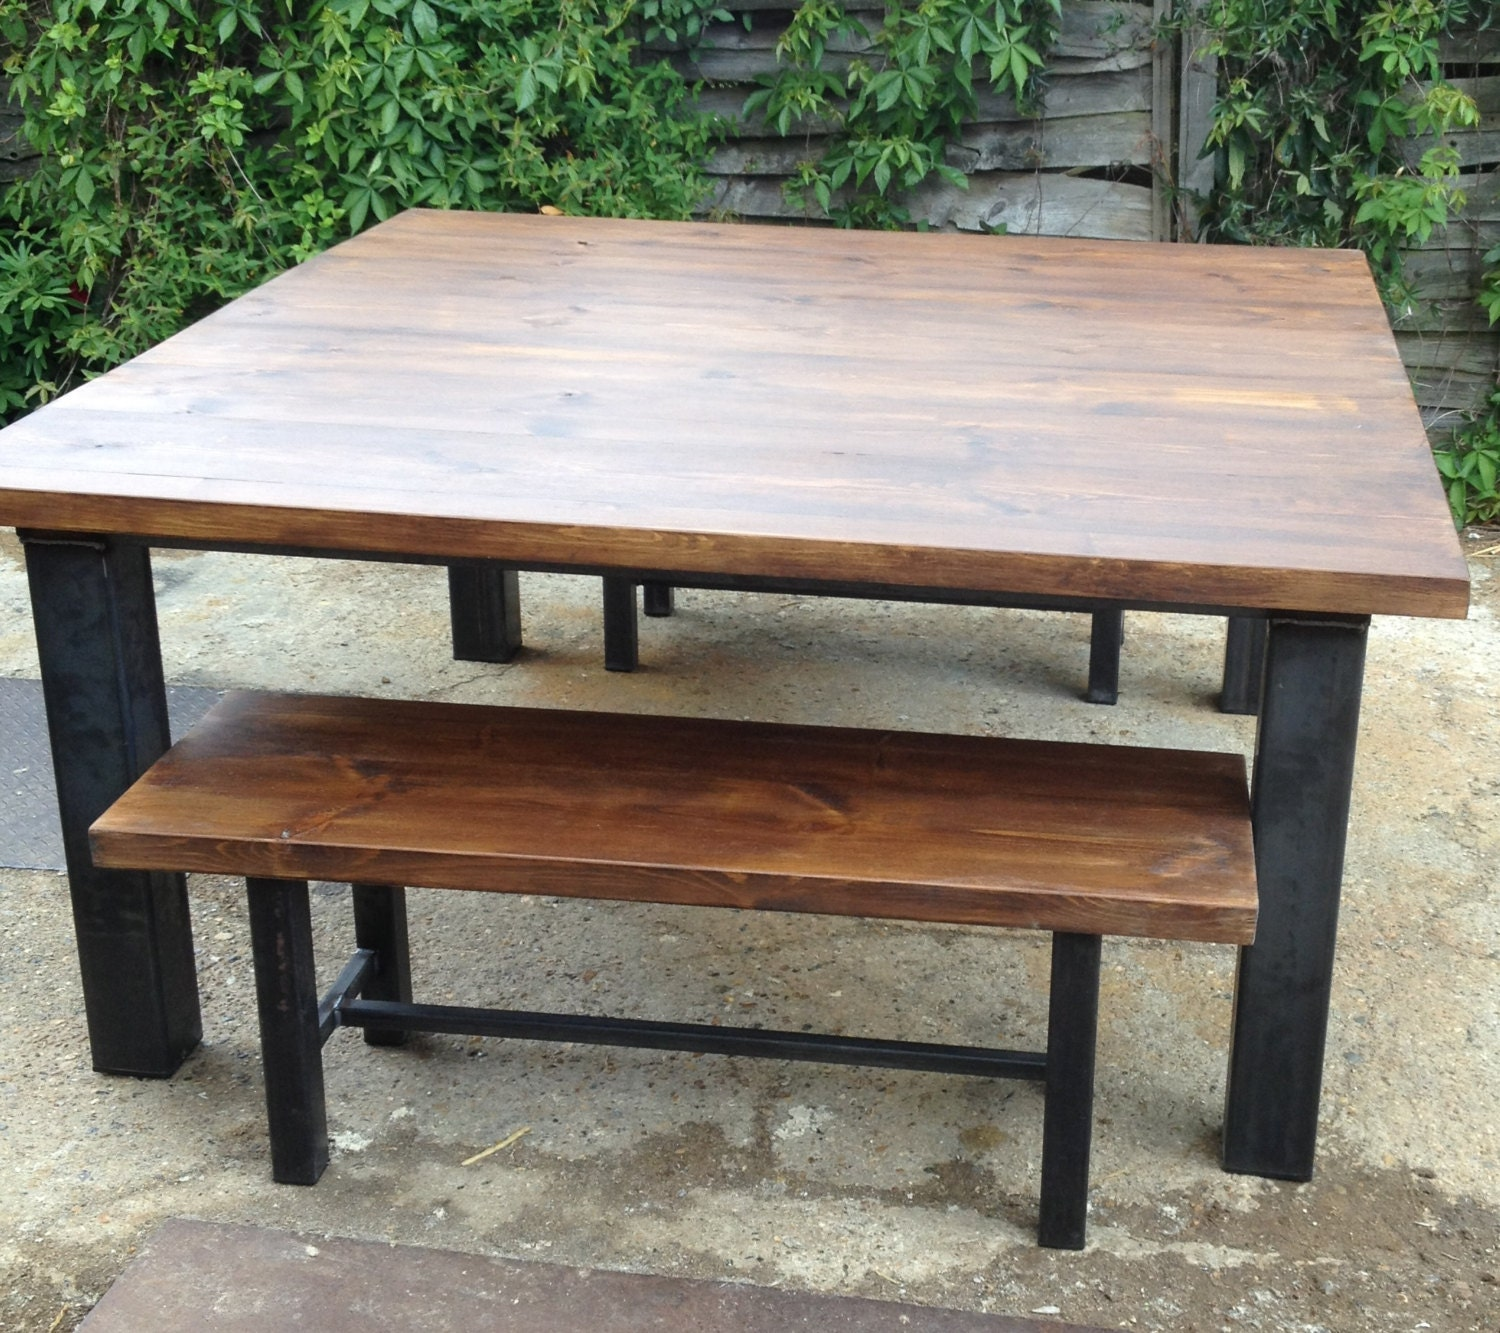 Bench Dining Vintage Industrial Bespoke Dining Table Bench: Vintage Industrial Chic Rustic Dining Table And Bench By